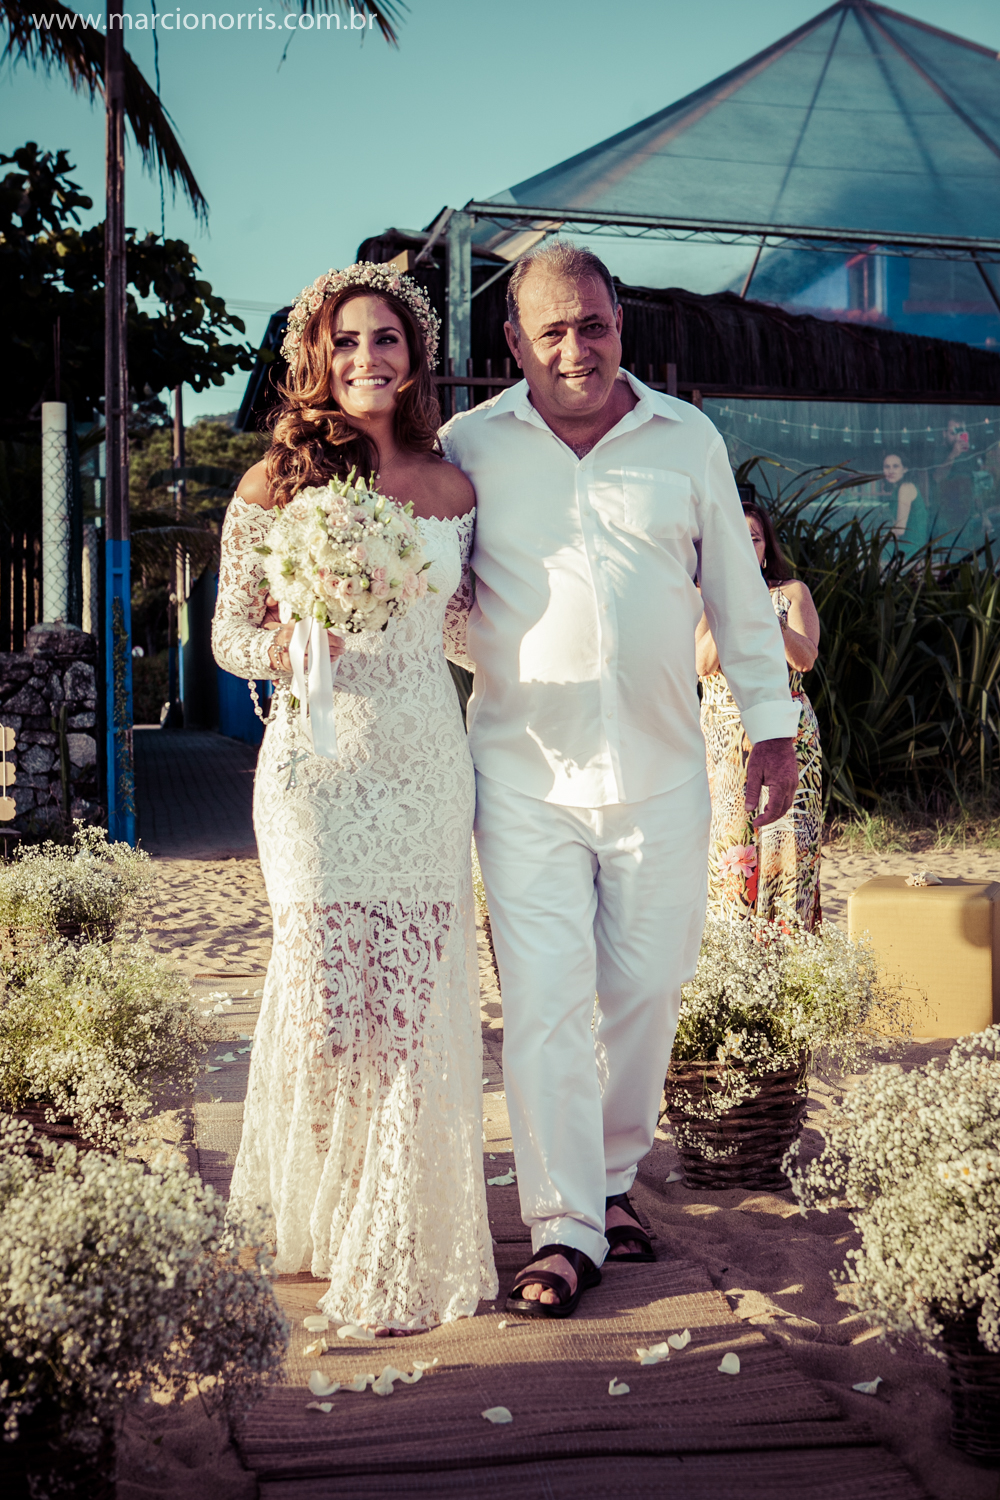 Destination Wedding - Boiçucanga